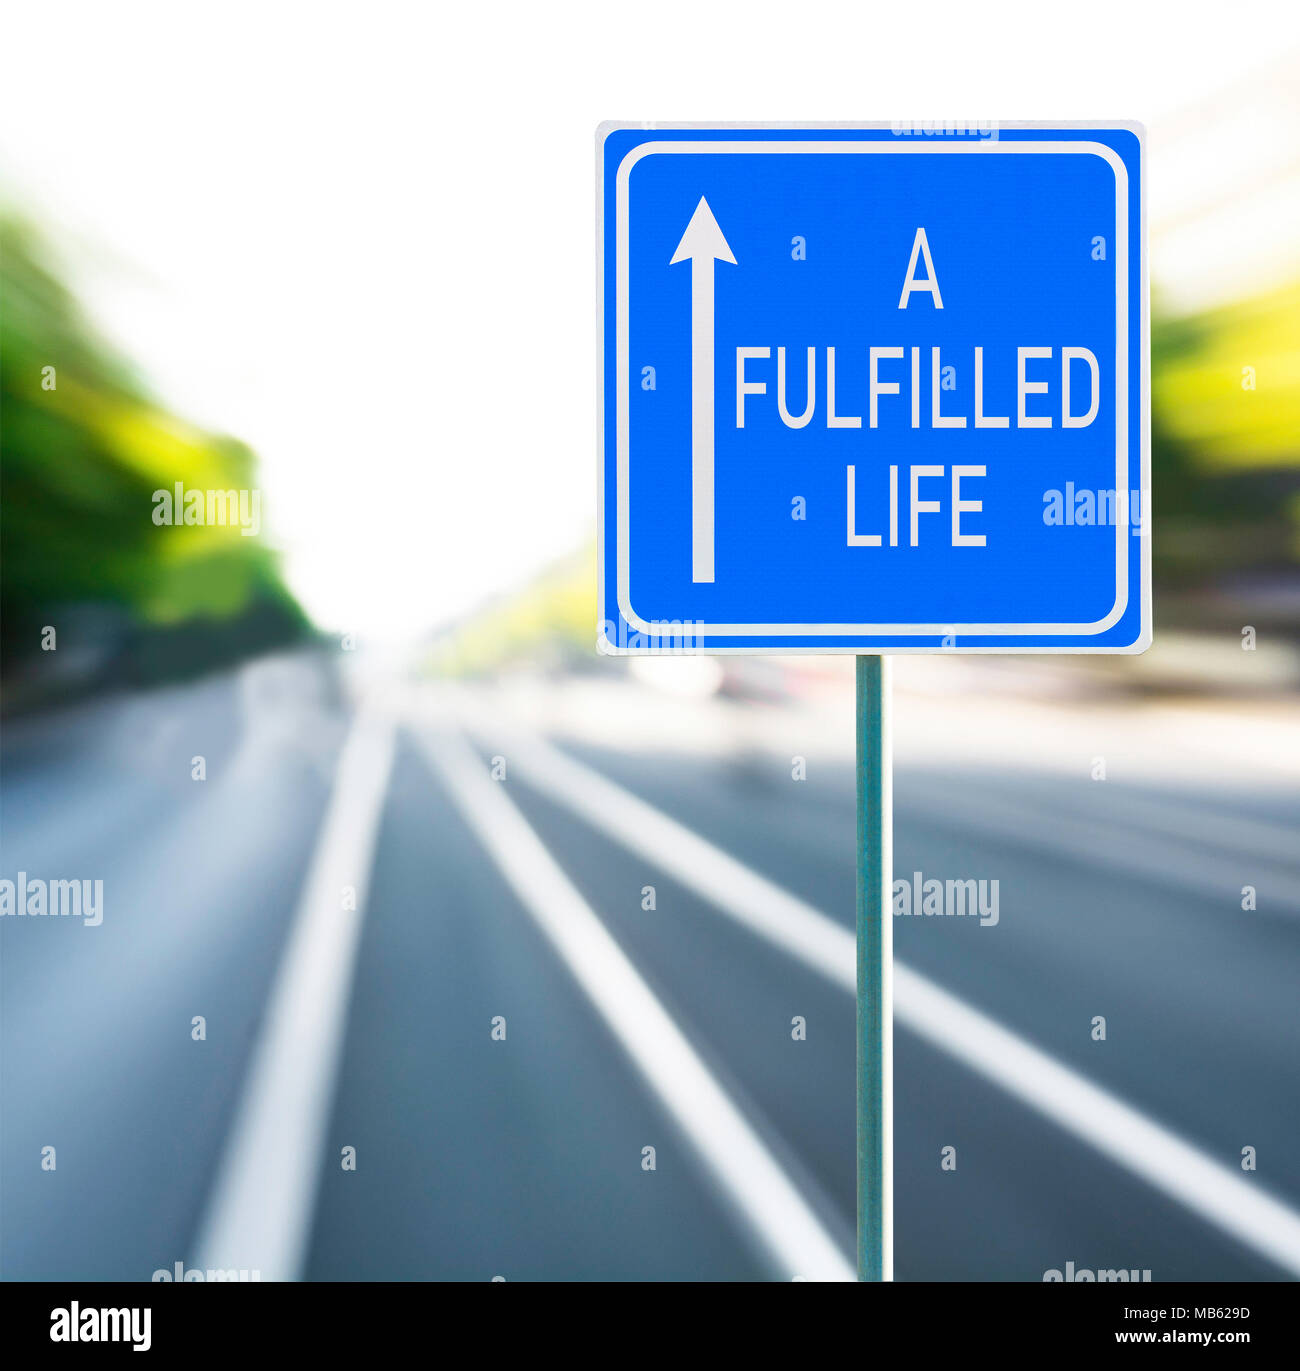 A fulfilled life motivational phrase on blue road sign with arrow and blurred speedy background. Copy space. - Stock Image